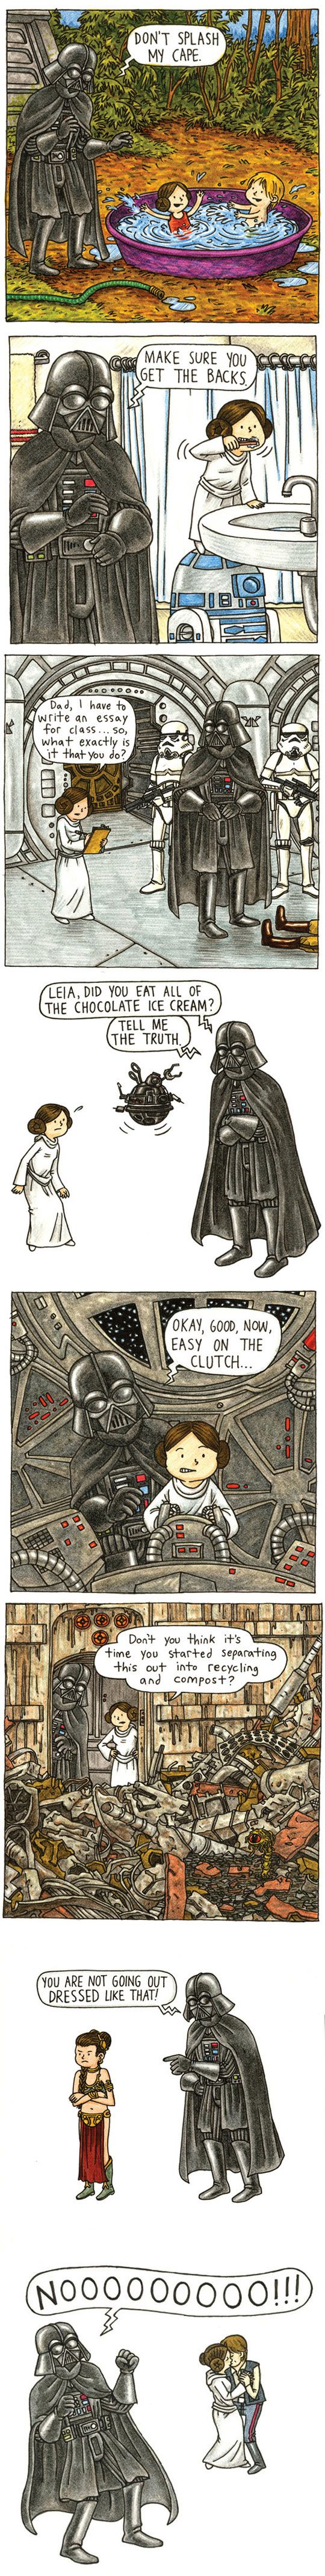 What Darth Vader would be like if he lived a normal life.